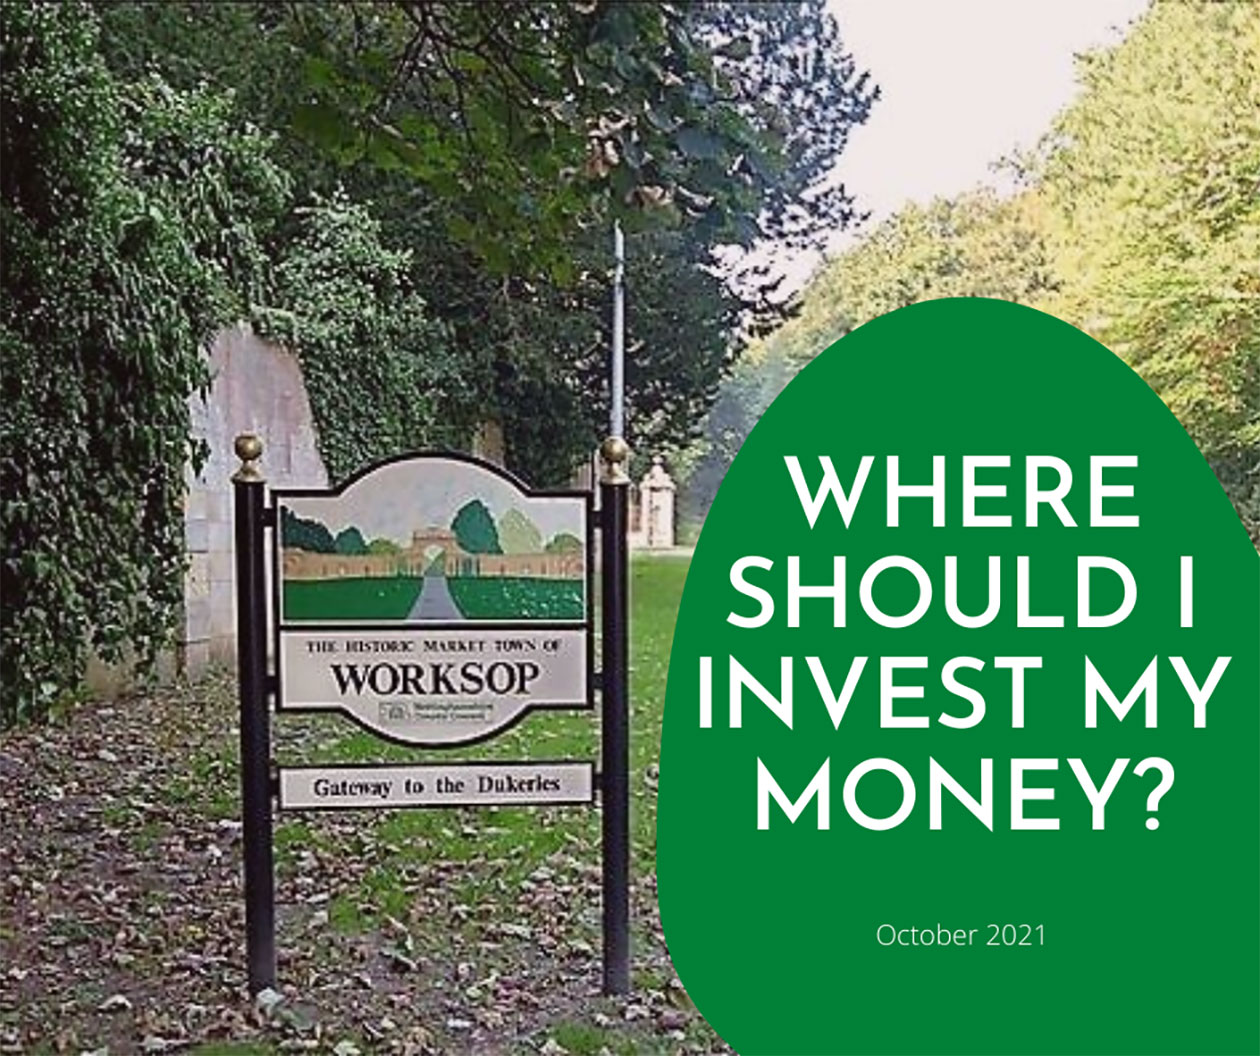 Is Worksop a good place to Invest?